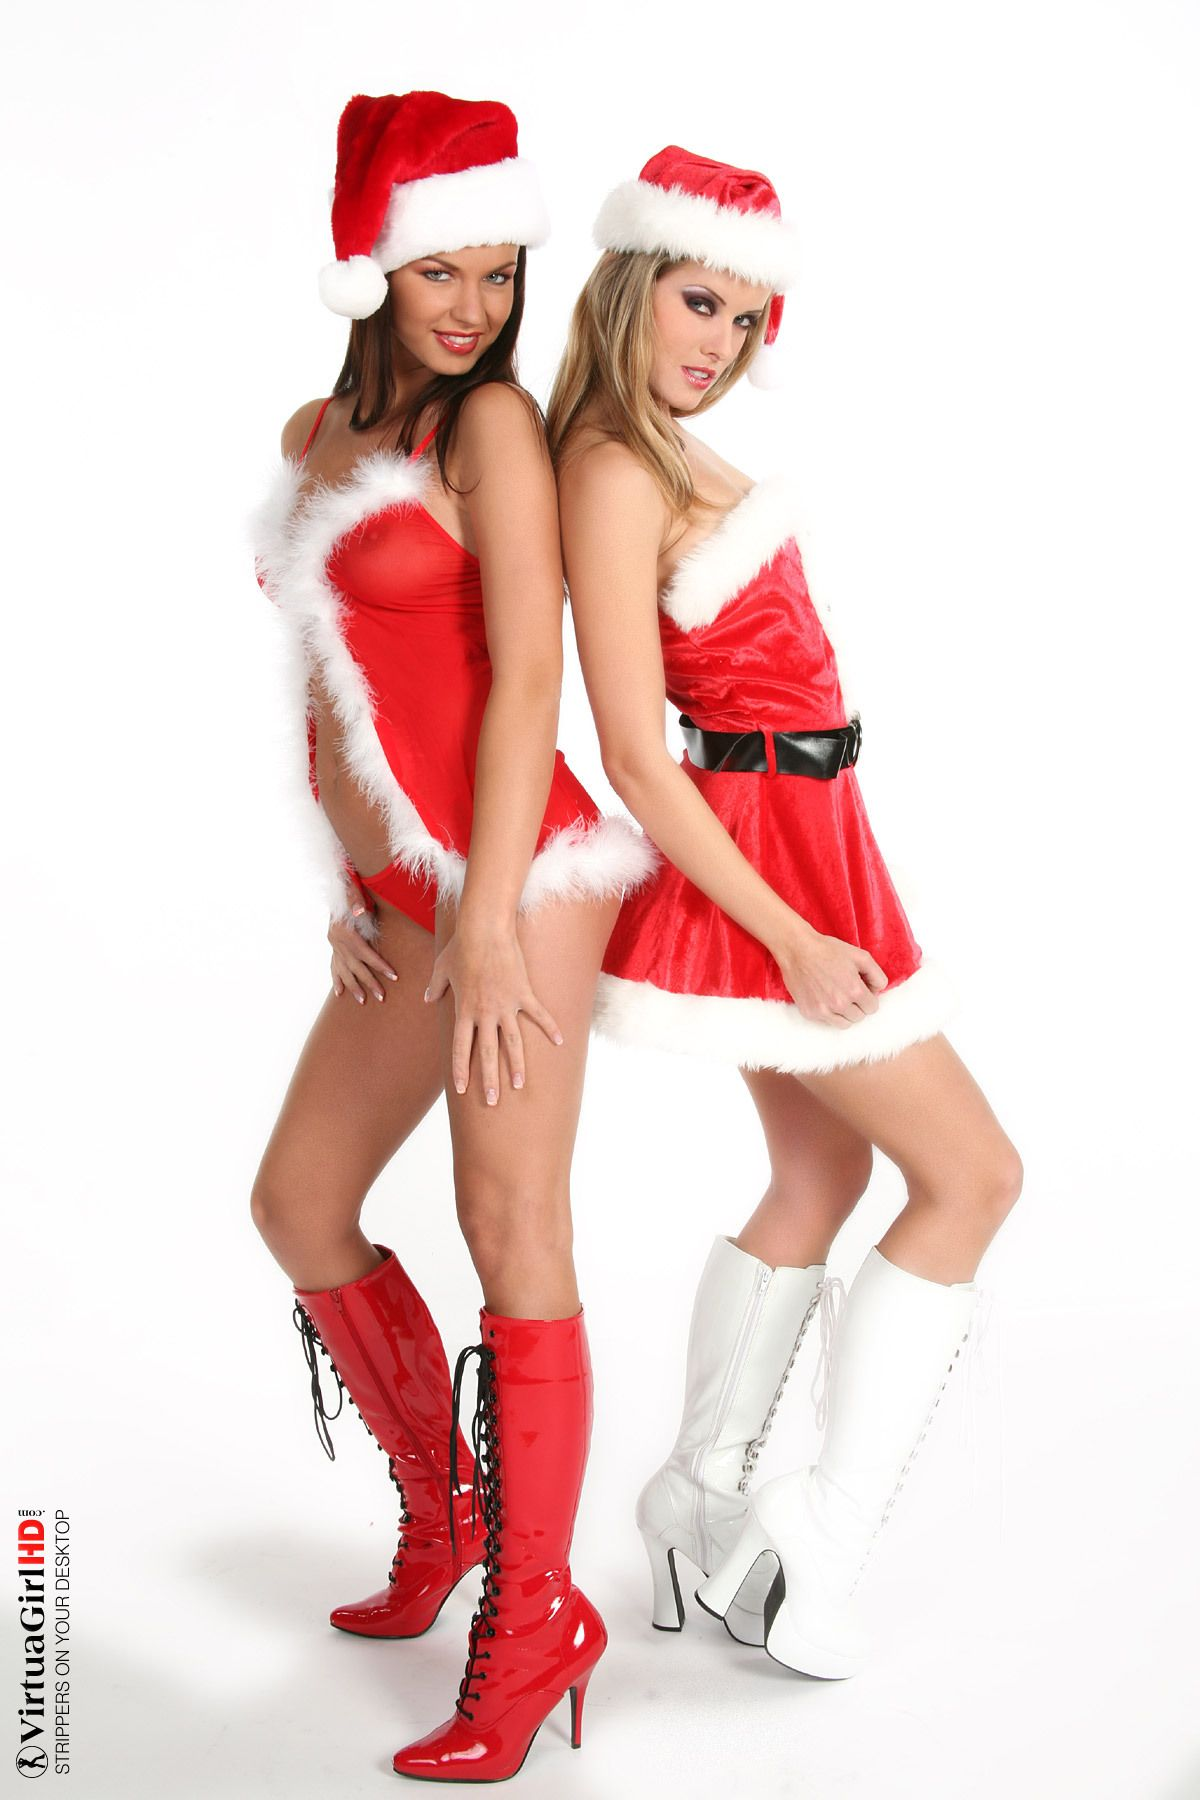 VirtuaGirl - Nikky Case & Mina - CHRISTMAS JEWELS 01